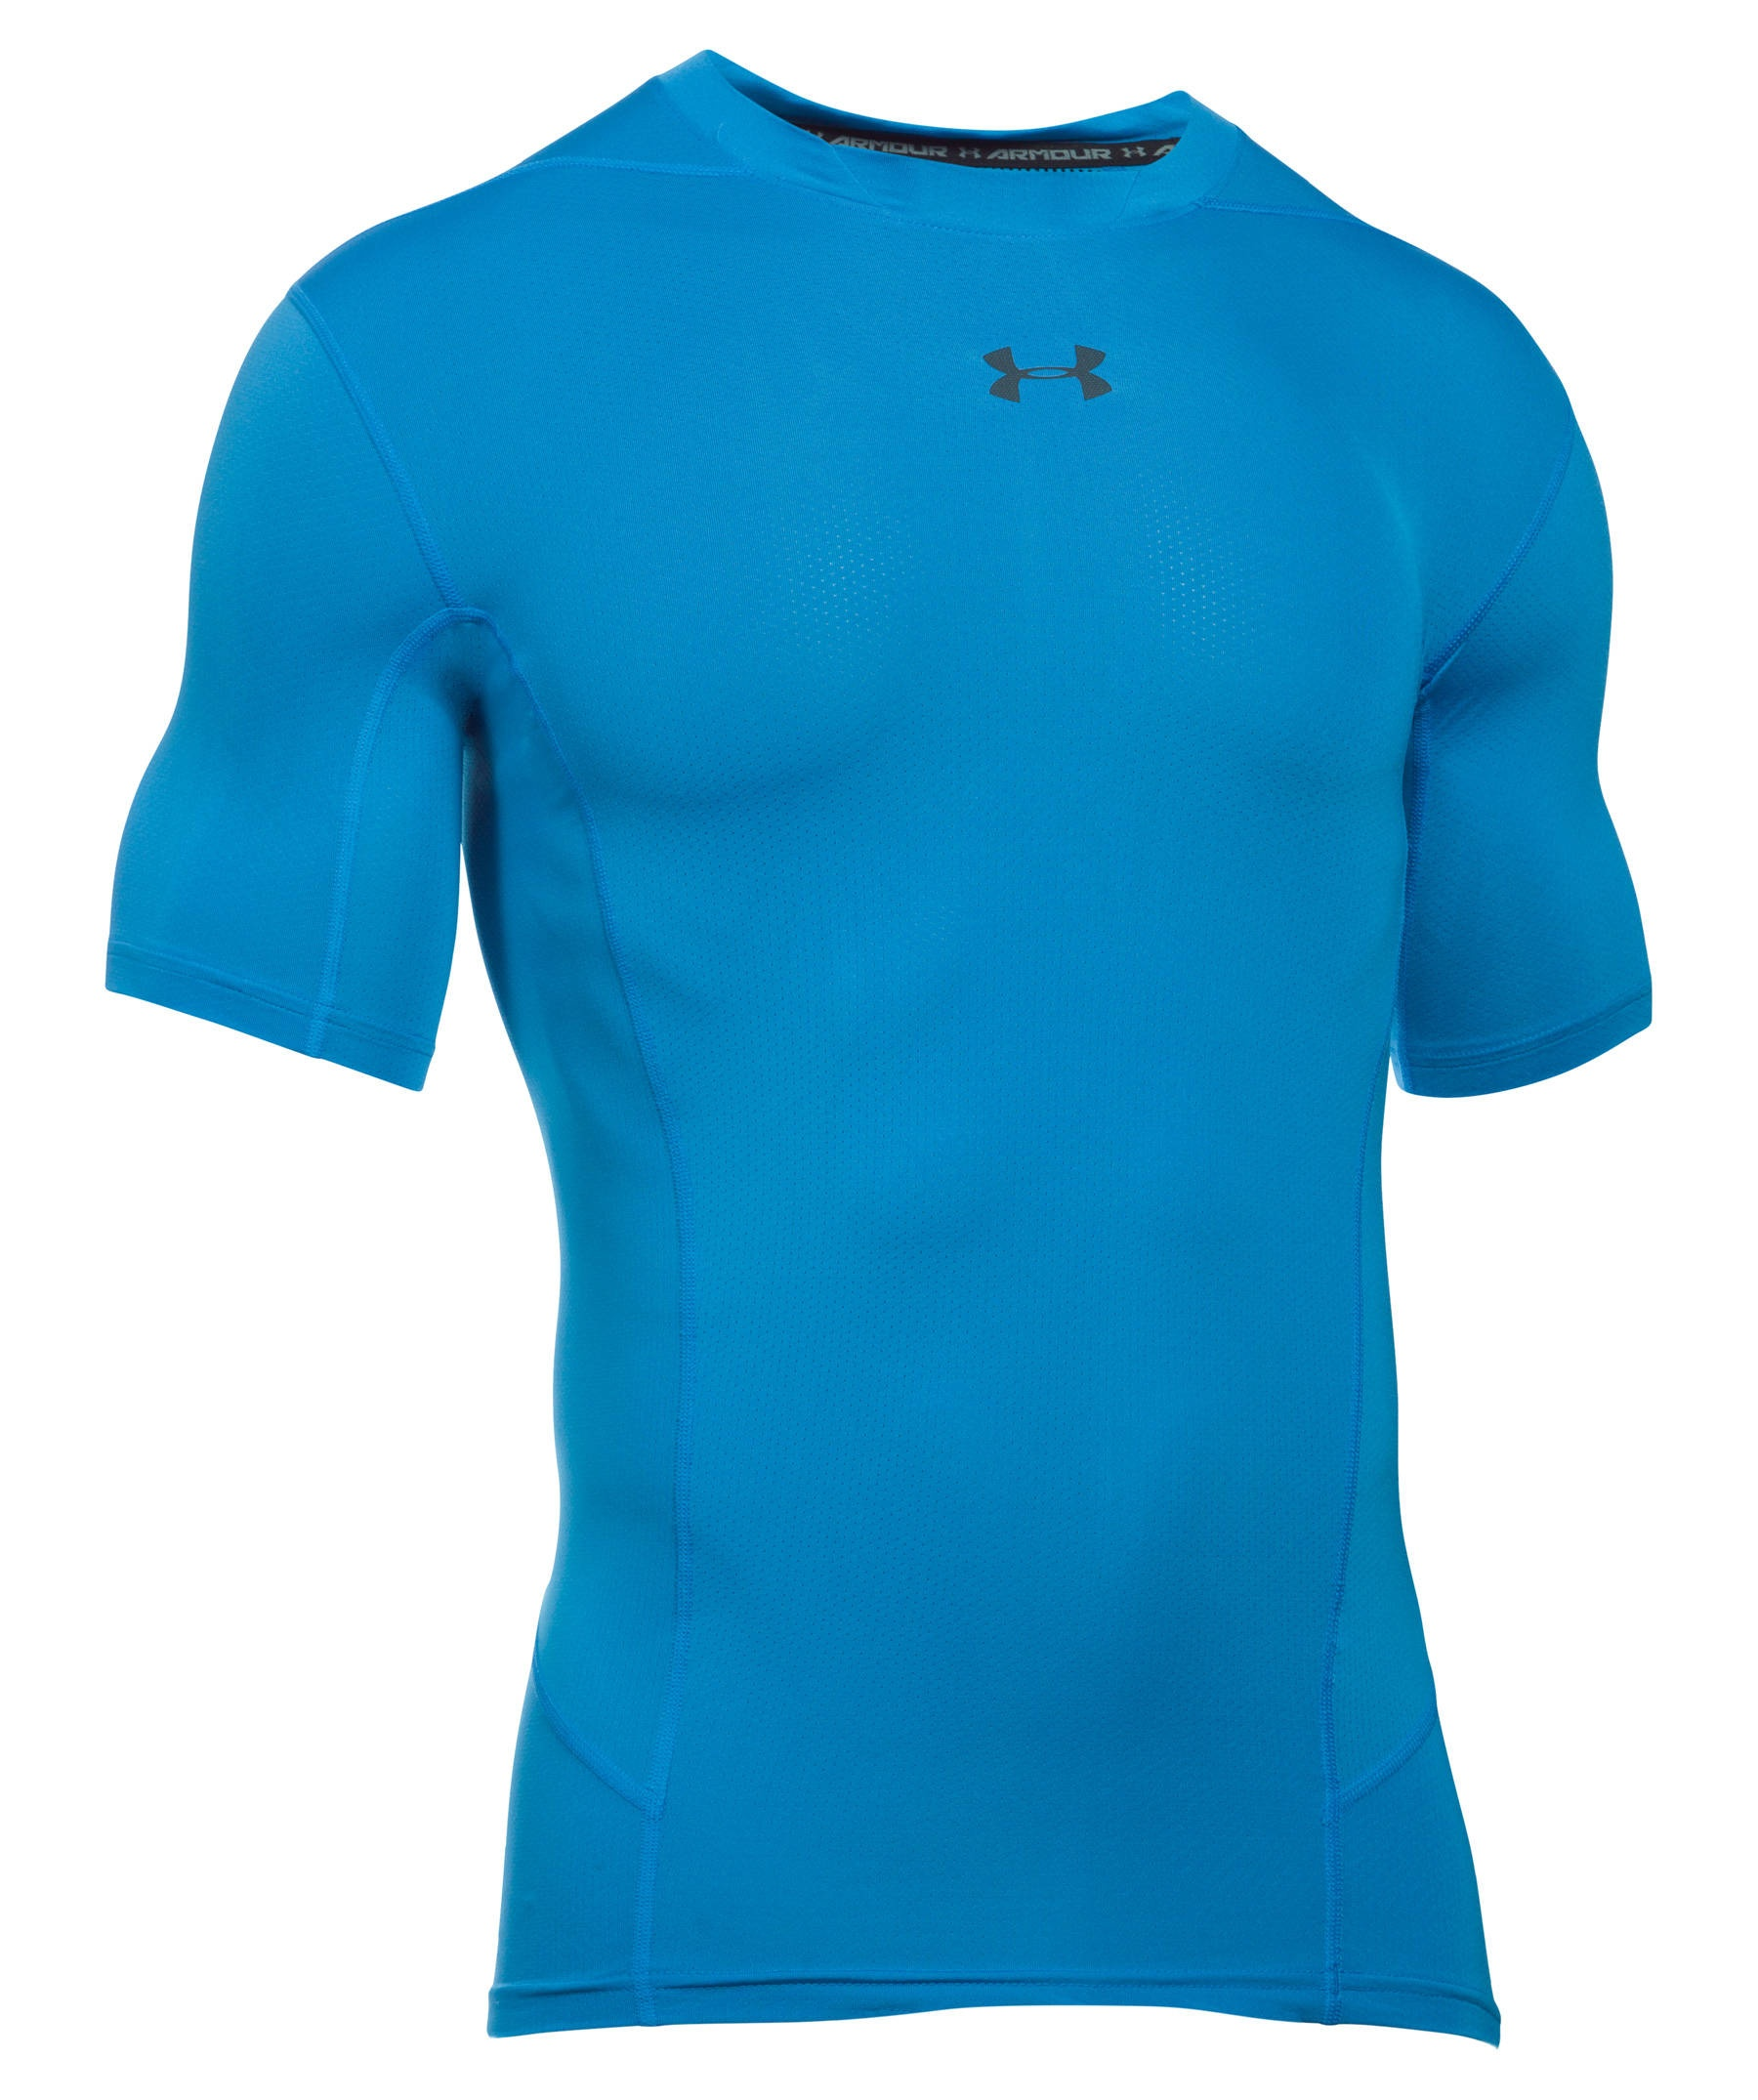 Under Armour blau Herren Funktionsshirt